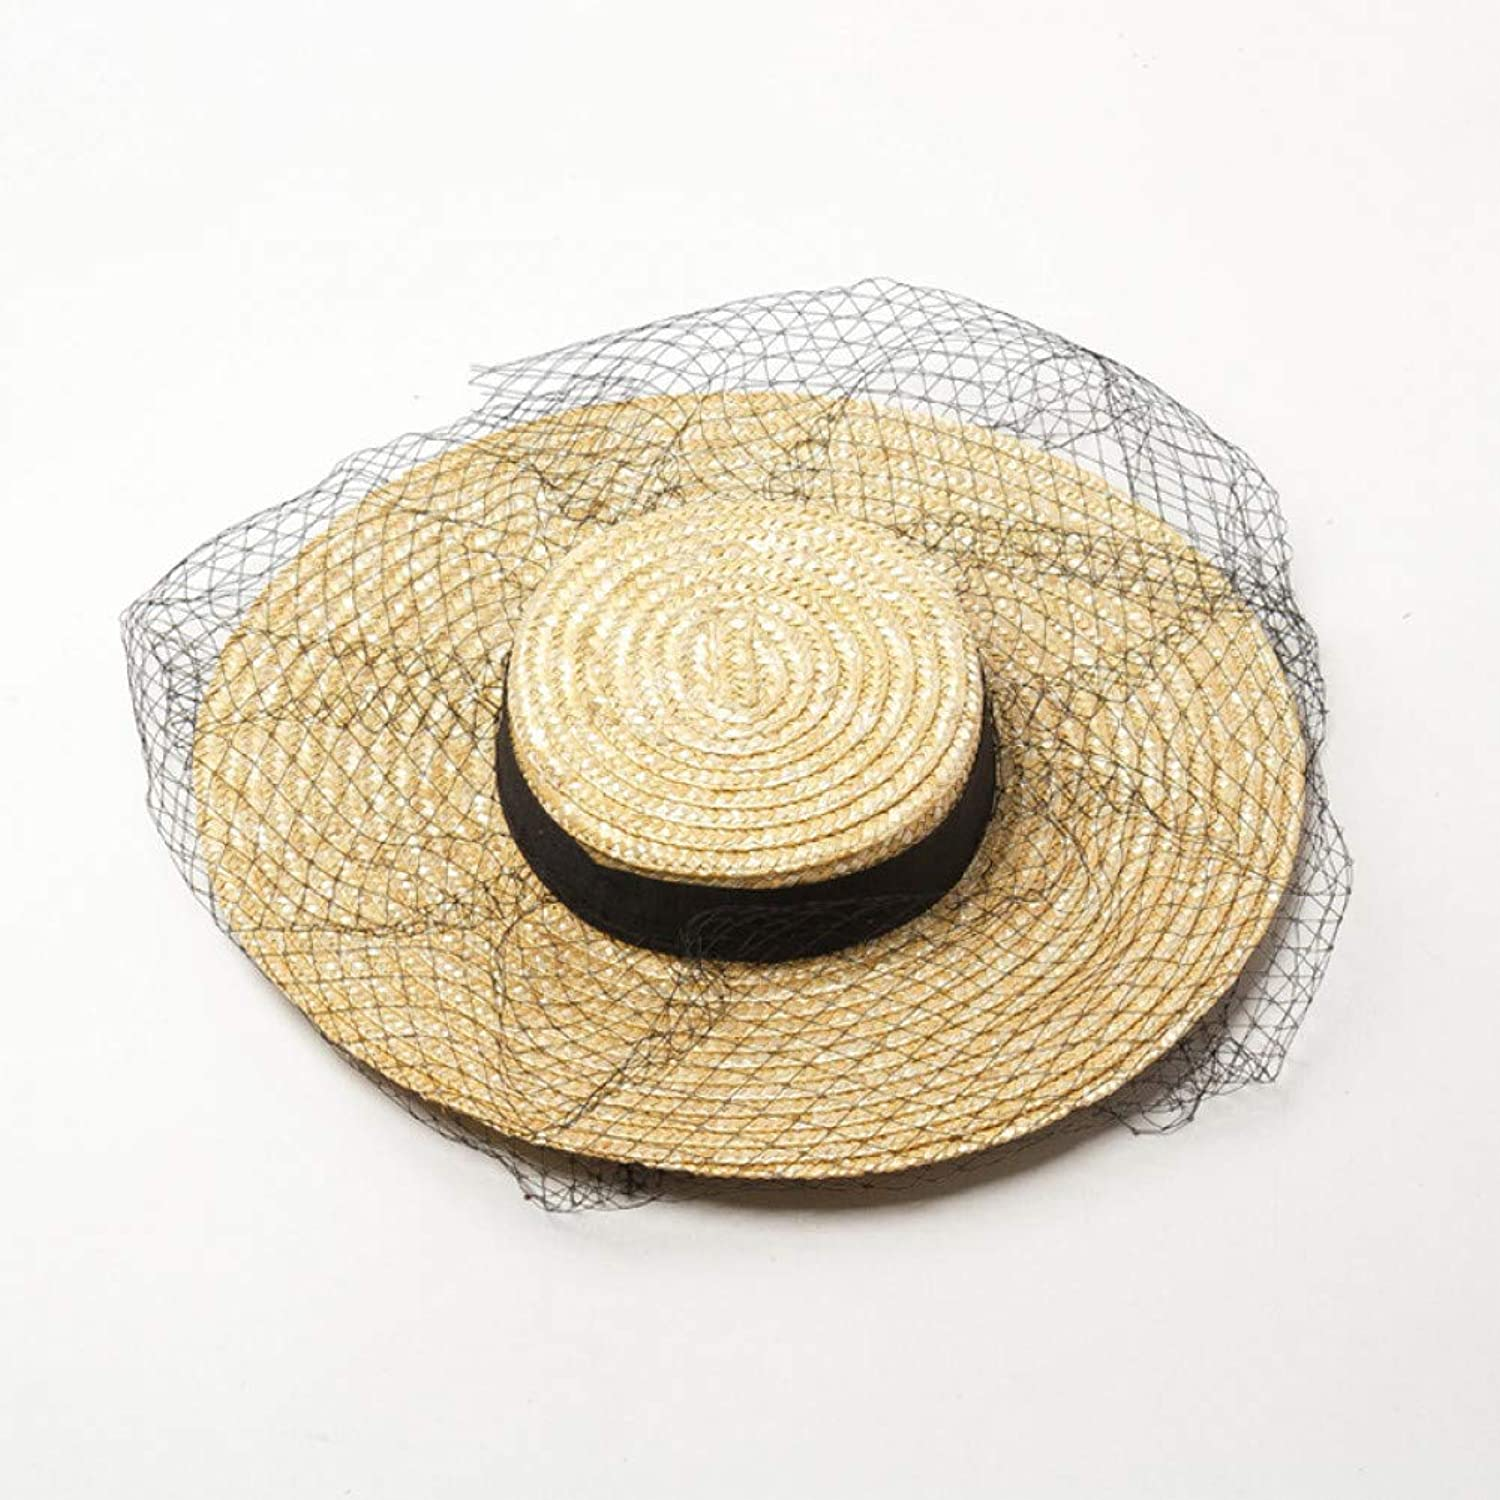 TYMYJF Spring and Summer Shallow Flat Top Wide Mesh Gauze Decorationstraw Straw Hatstage Catwalk Stylewith Flat Straw Hat